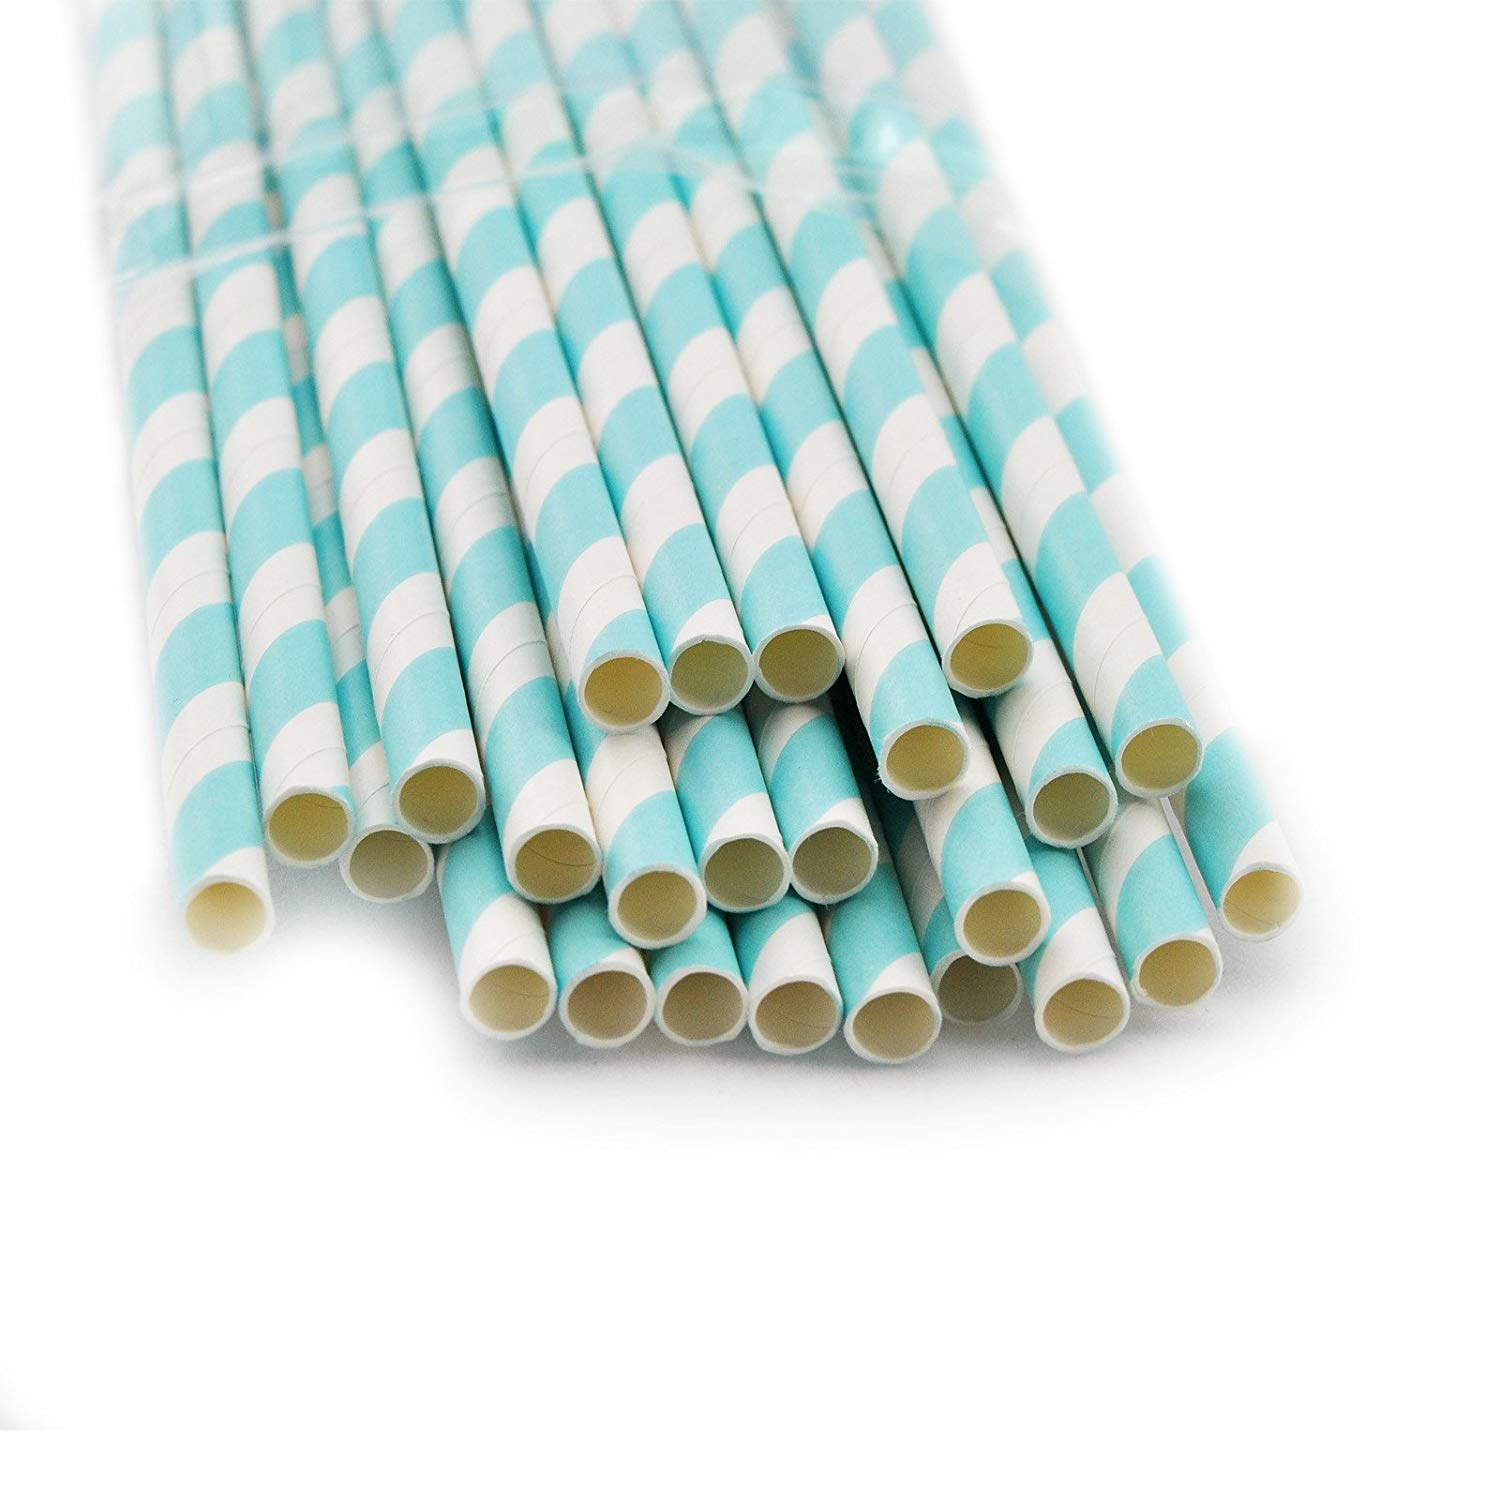 Denshine 25 X Striped Paper Drinking Straws-rainbow Mixed for Party Table Decorations- Pastel Blue Stripe